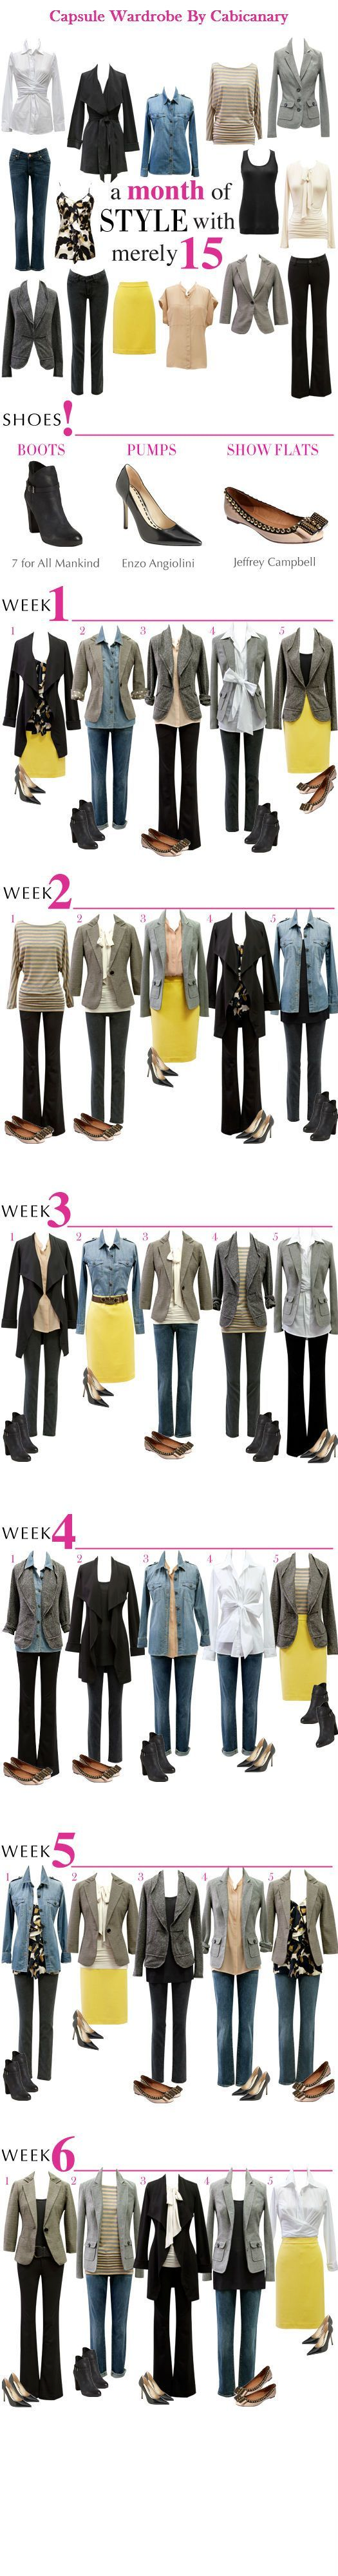 Style Tips | Fashion trends | cabi